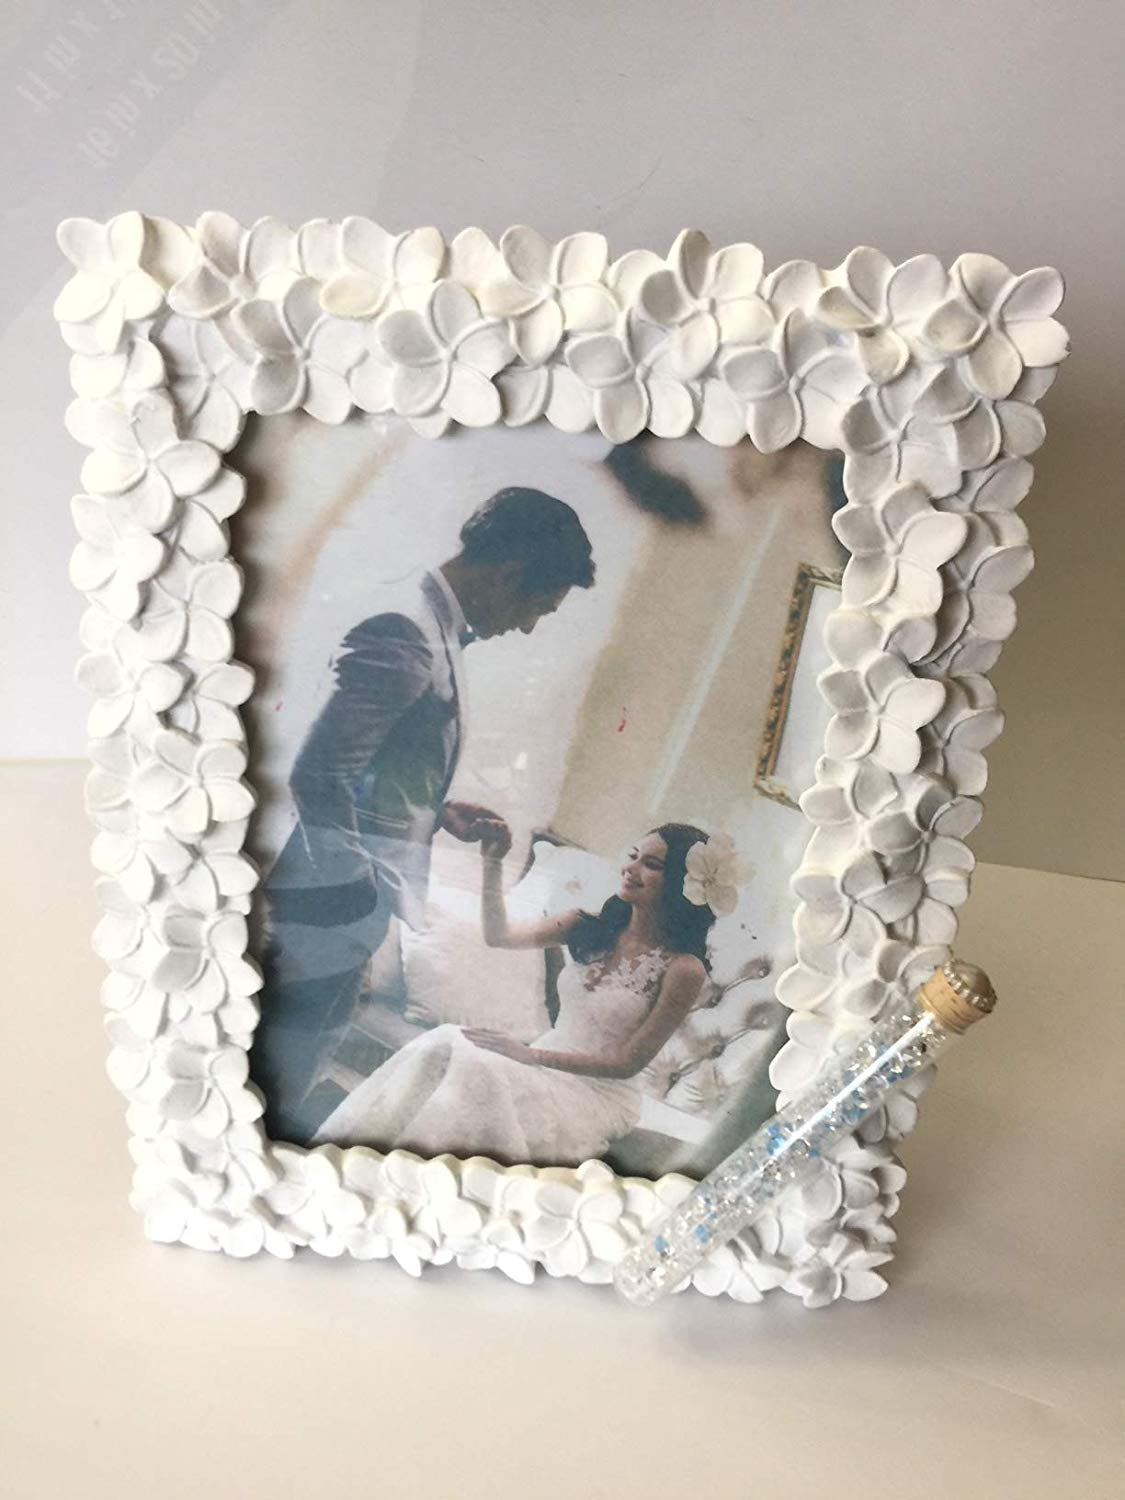 Jewish Wedding White Flowers Photo Picture Frame With a Container for Broken Wedding Glass, 5 x 7 Picture Bridal Shower Or Wedding Gift